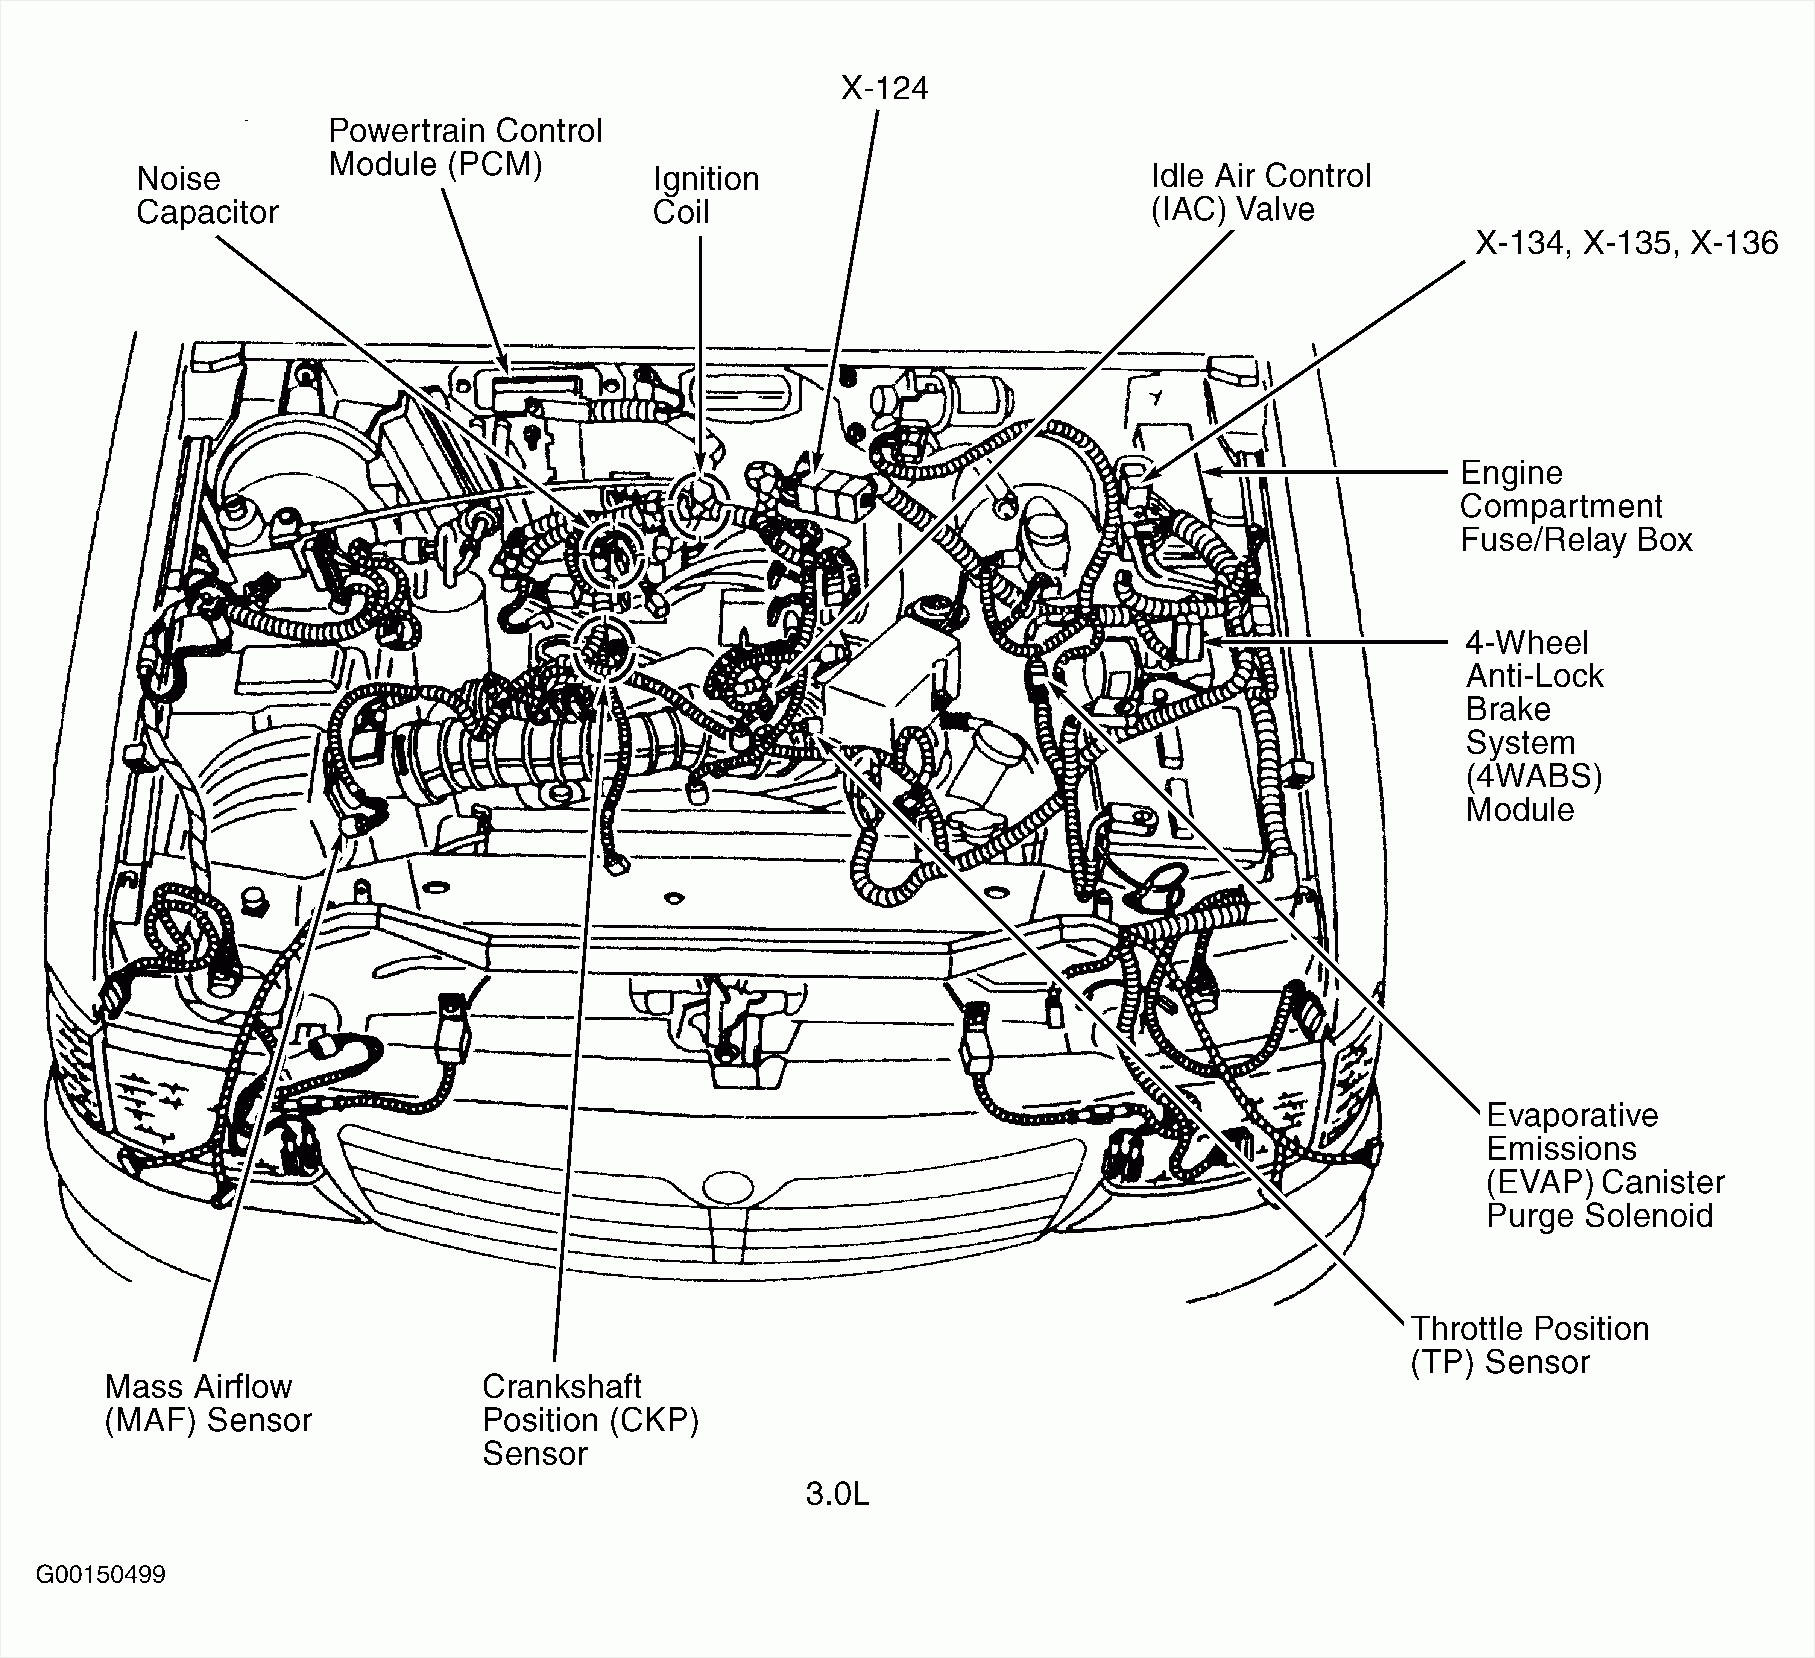 Fuse Box In Mazda 626 Wiring Library 98 2004 Tribute Diagram Manual Download Schematics 1994 B3000